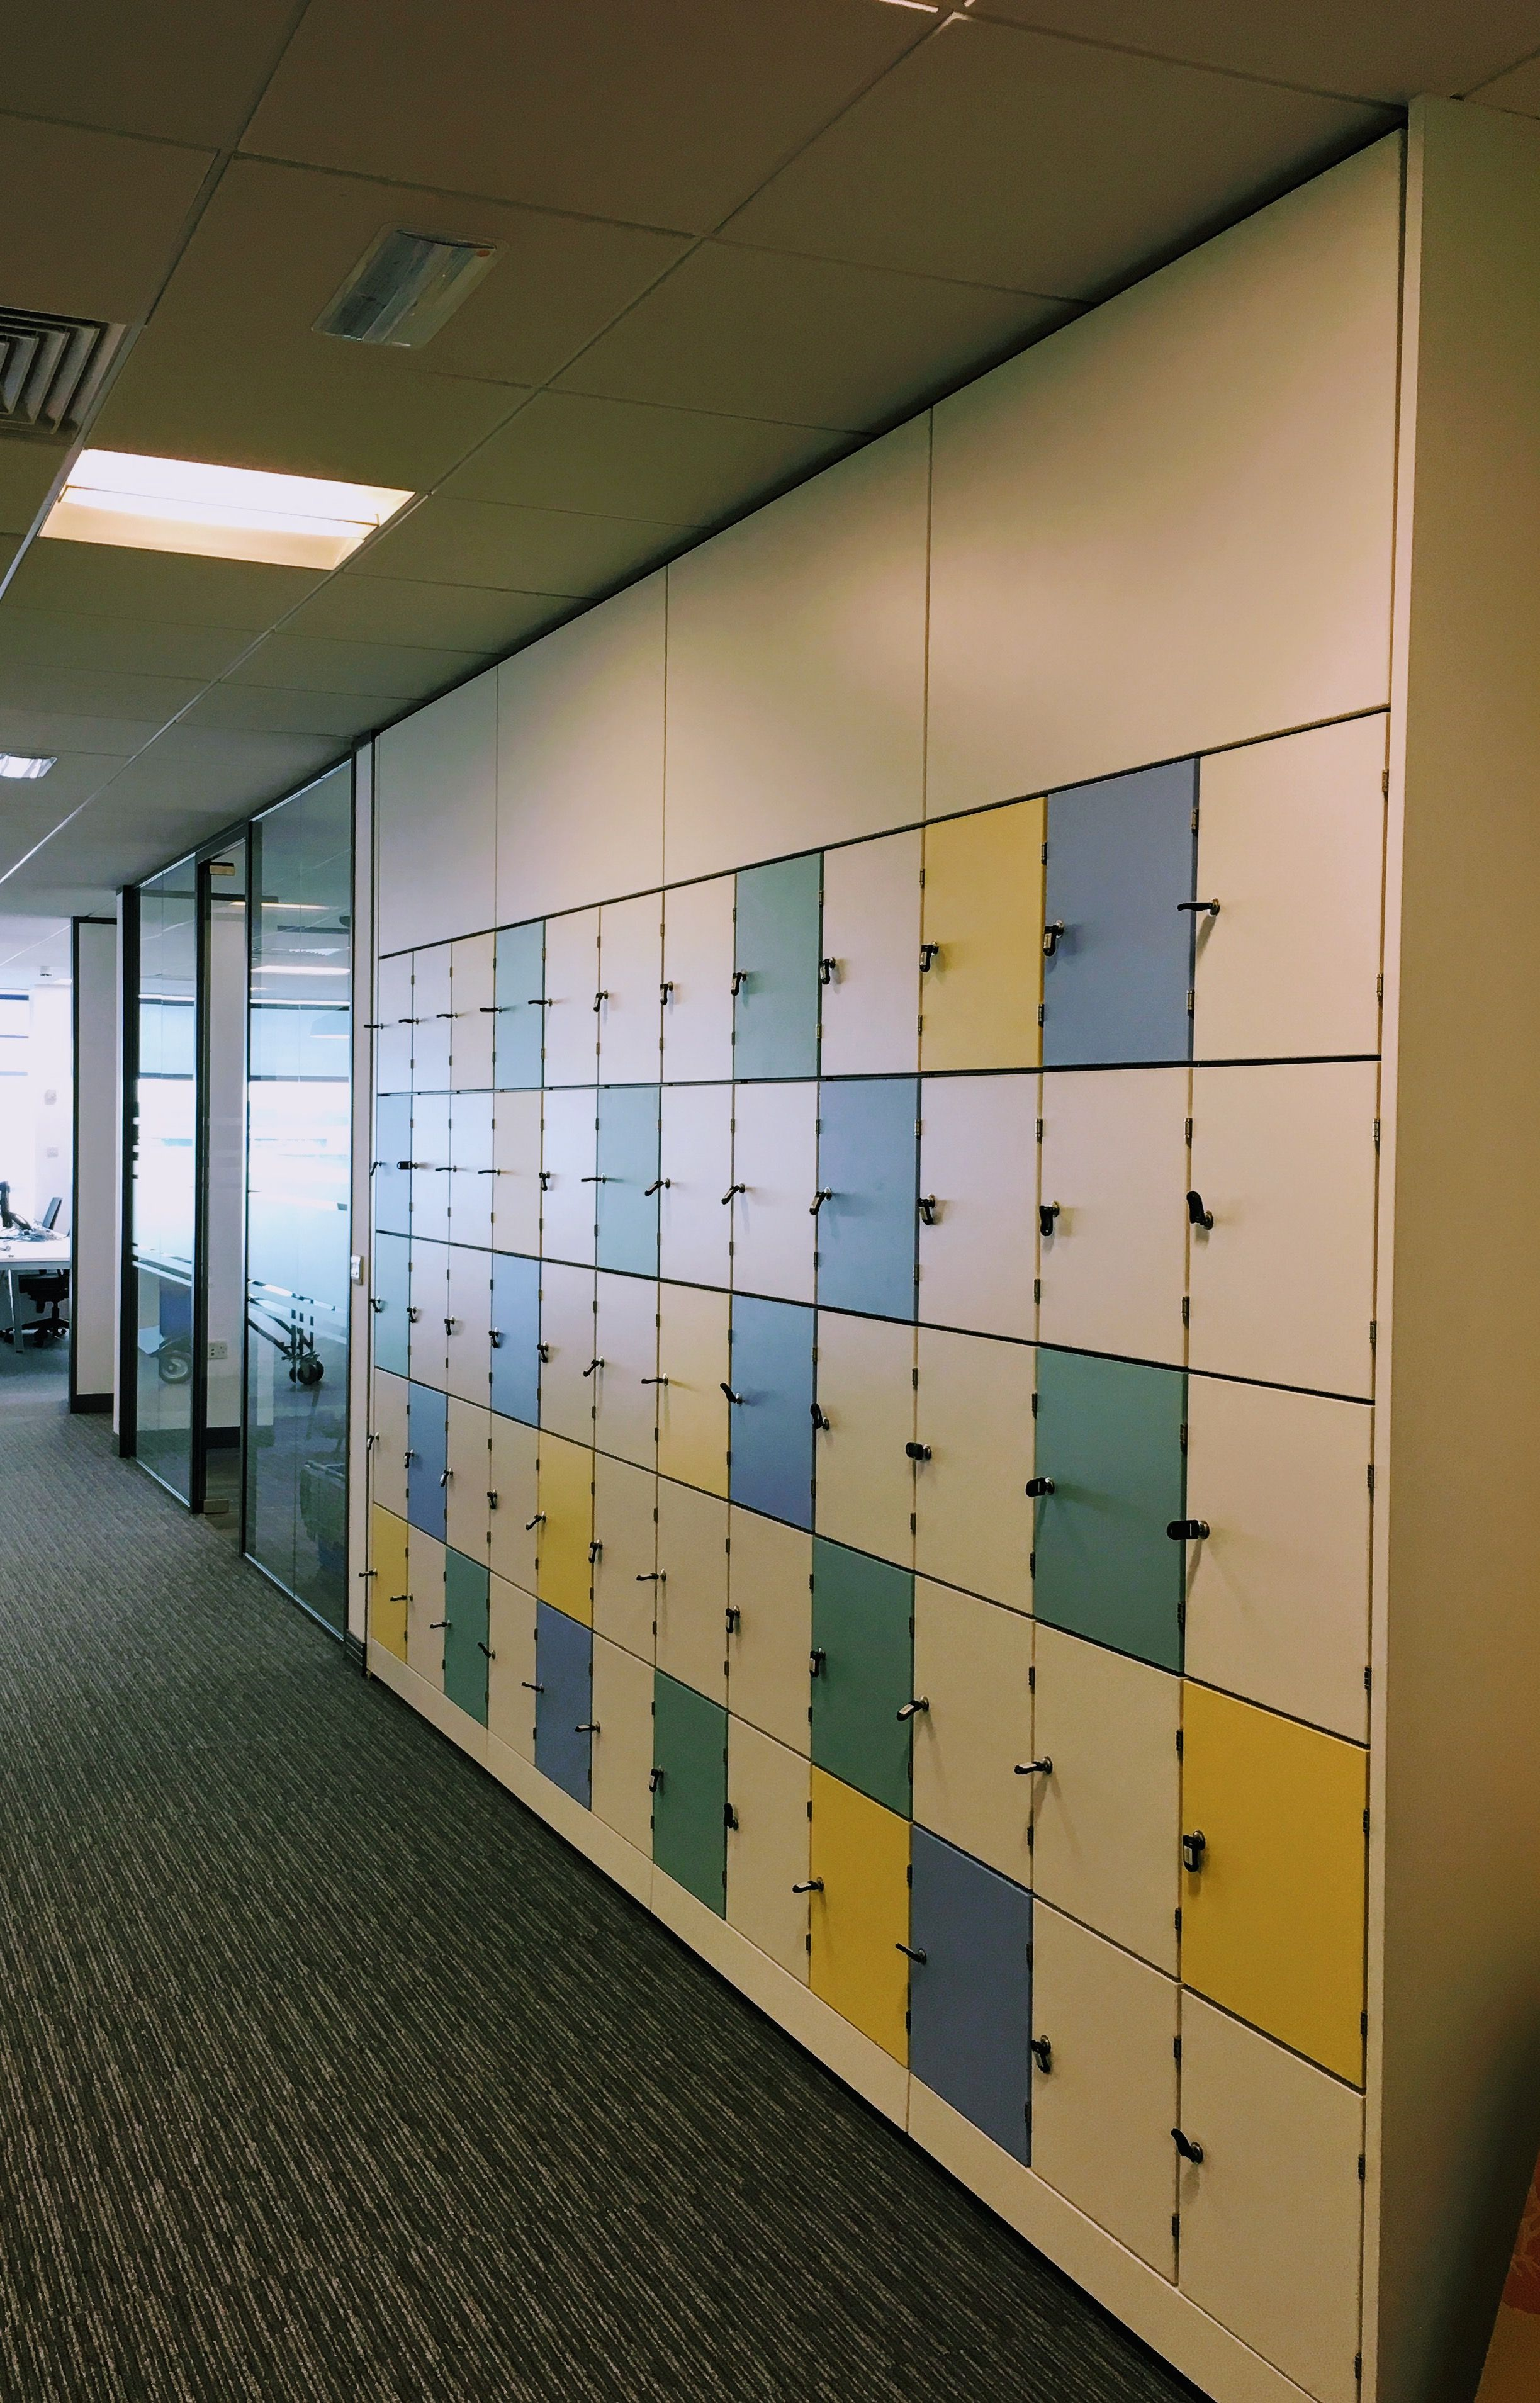 personal office design. Built In Locker Wall For Personal Storage Within A Large Corporate Office. Courtesy Of Aztec Interiors (Northern) Ltd. #fitout #officedesign #officespace Office Design